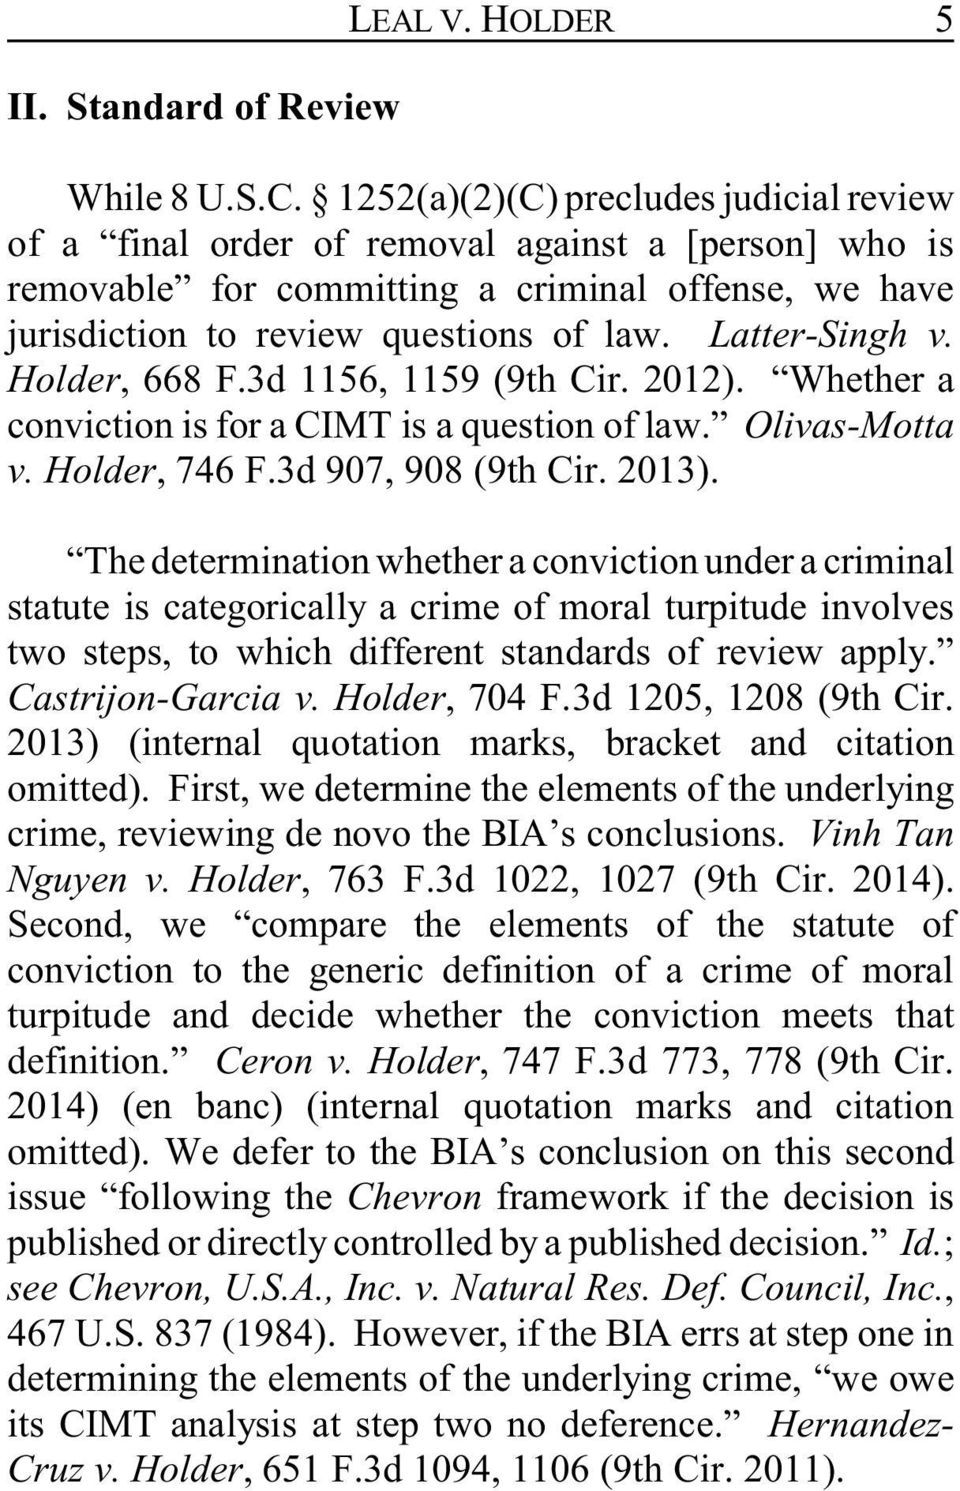 Latter-Singh v. Holder, 668 F.3d 1156, 1159 (9th Cir. 2012). Whether a conviction is for a CIMT is a question of law. Olivas-Motta v. Holder, 746 F.3d 907, 908 (9th Cir. 2013).